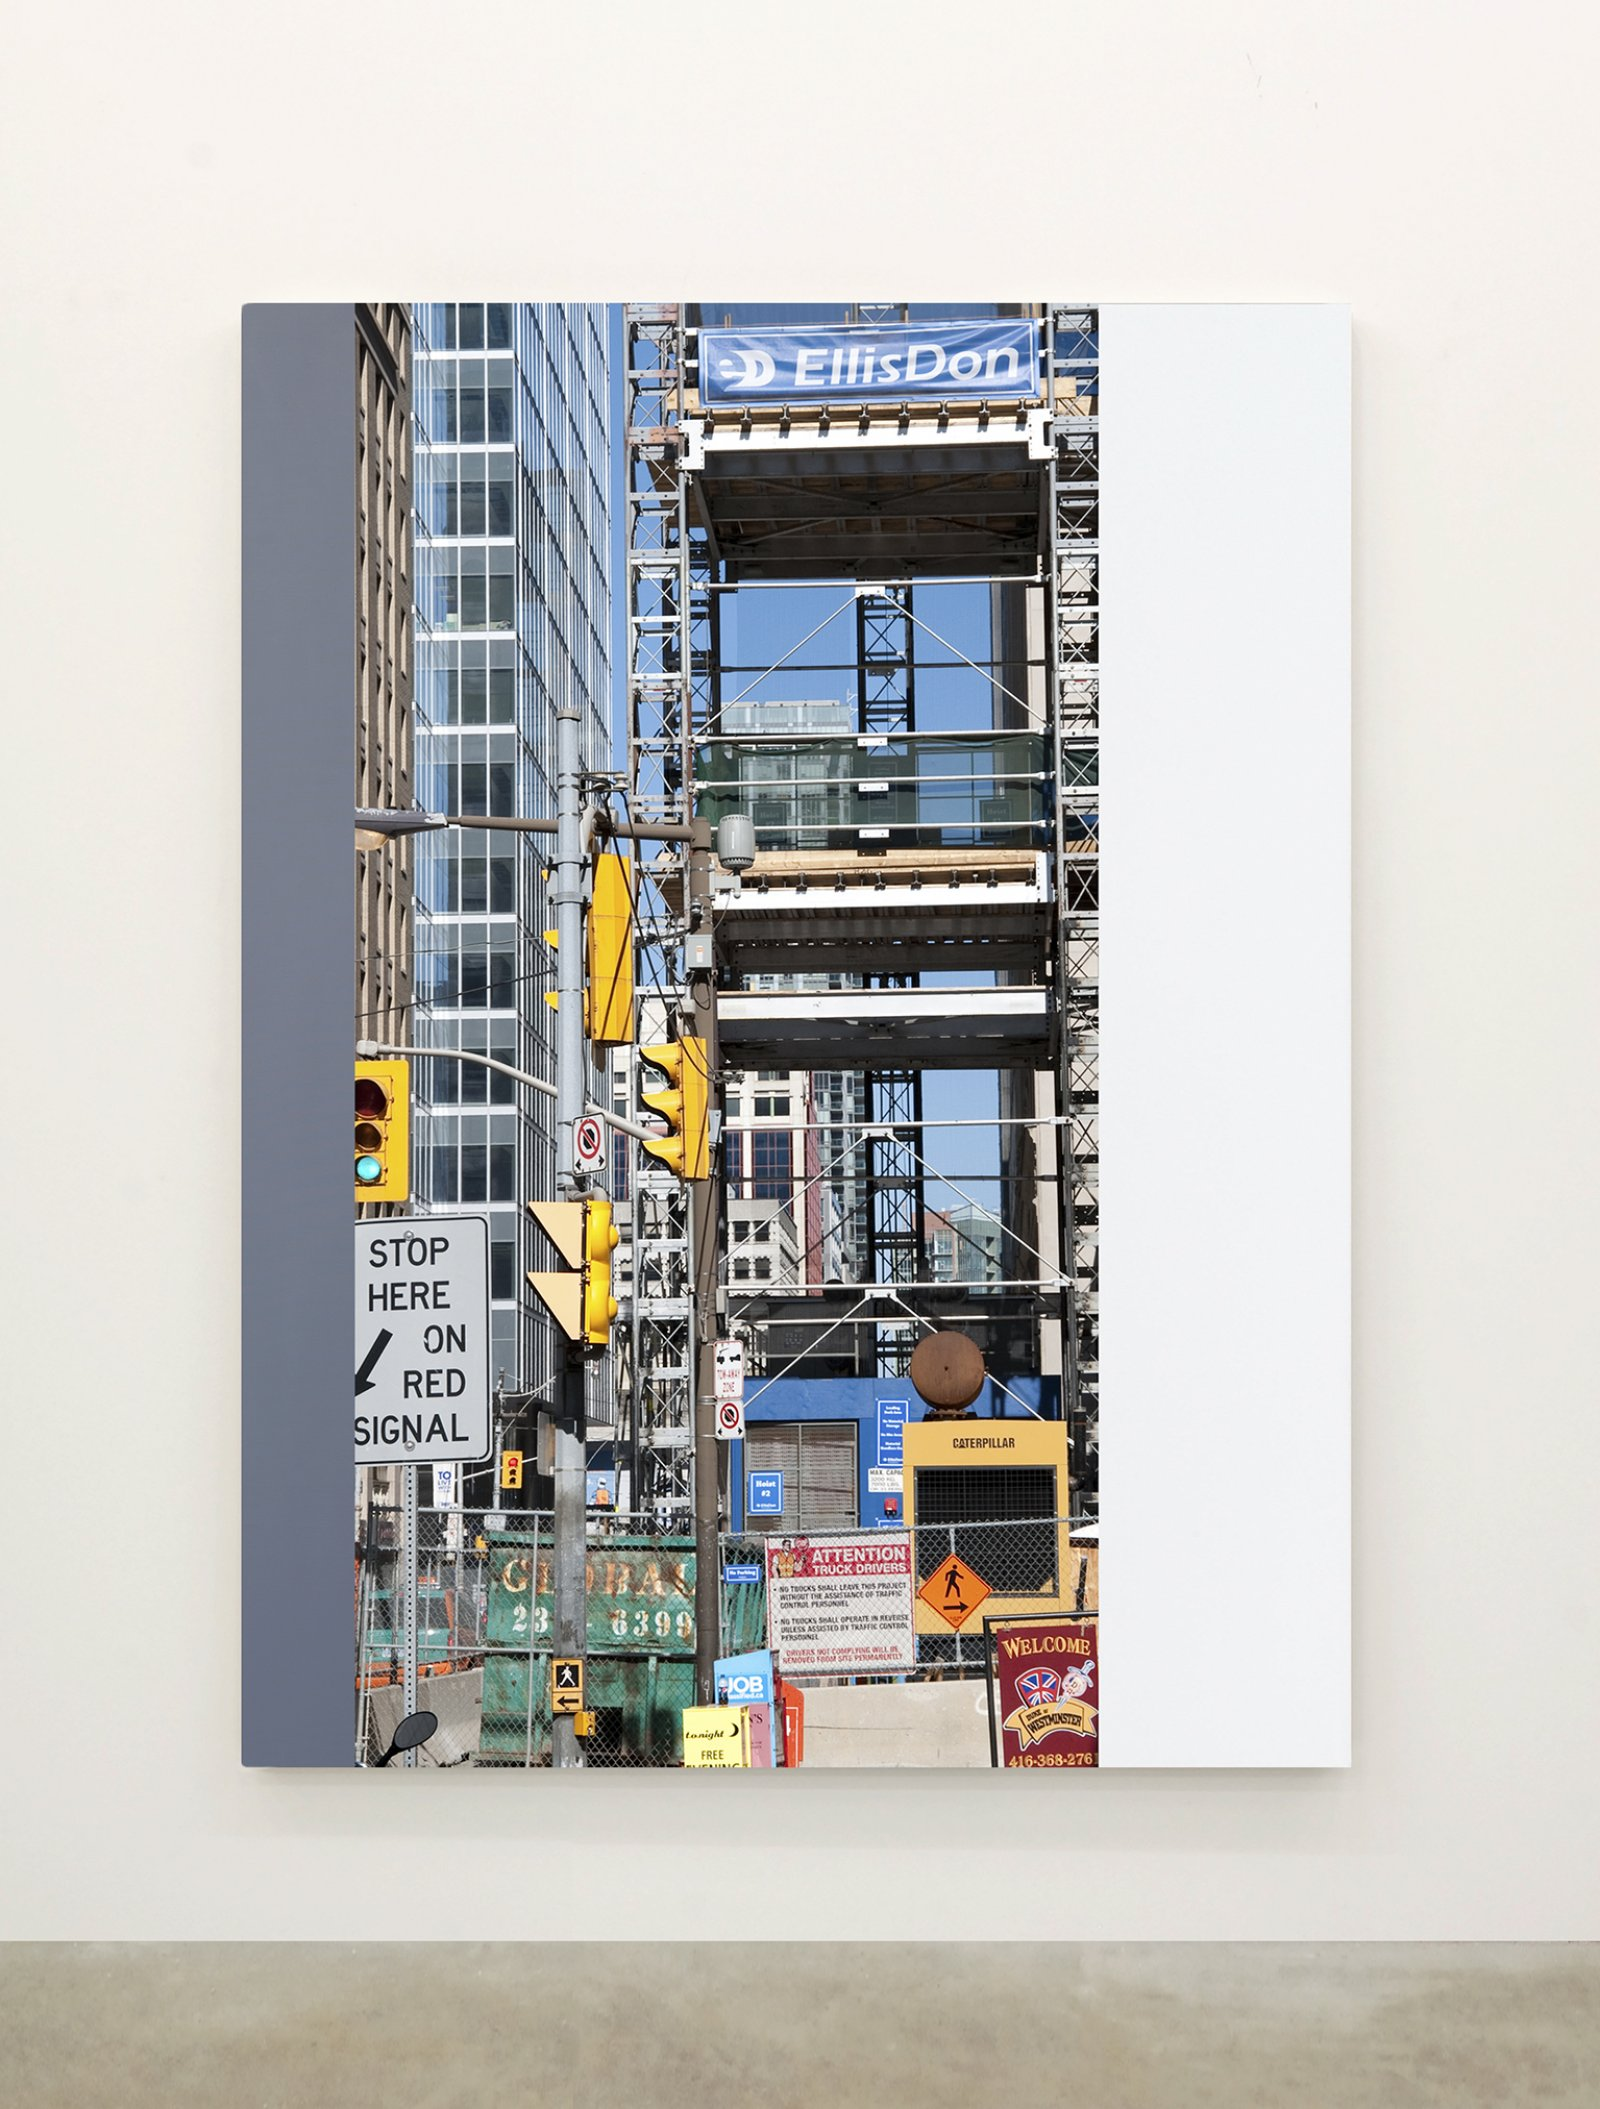 Ian Wallace,Abstract Painting II(The Financial District), 2010,12 photolaminate with acrylic on canvas panels, each 96 x 72 in. (244 x 183 cm)